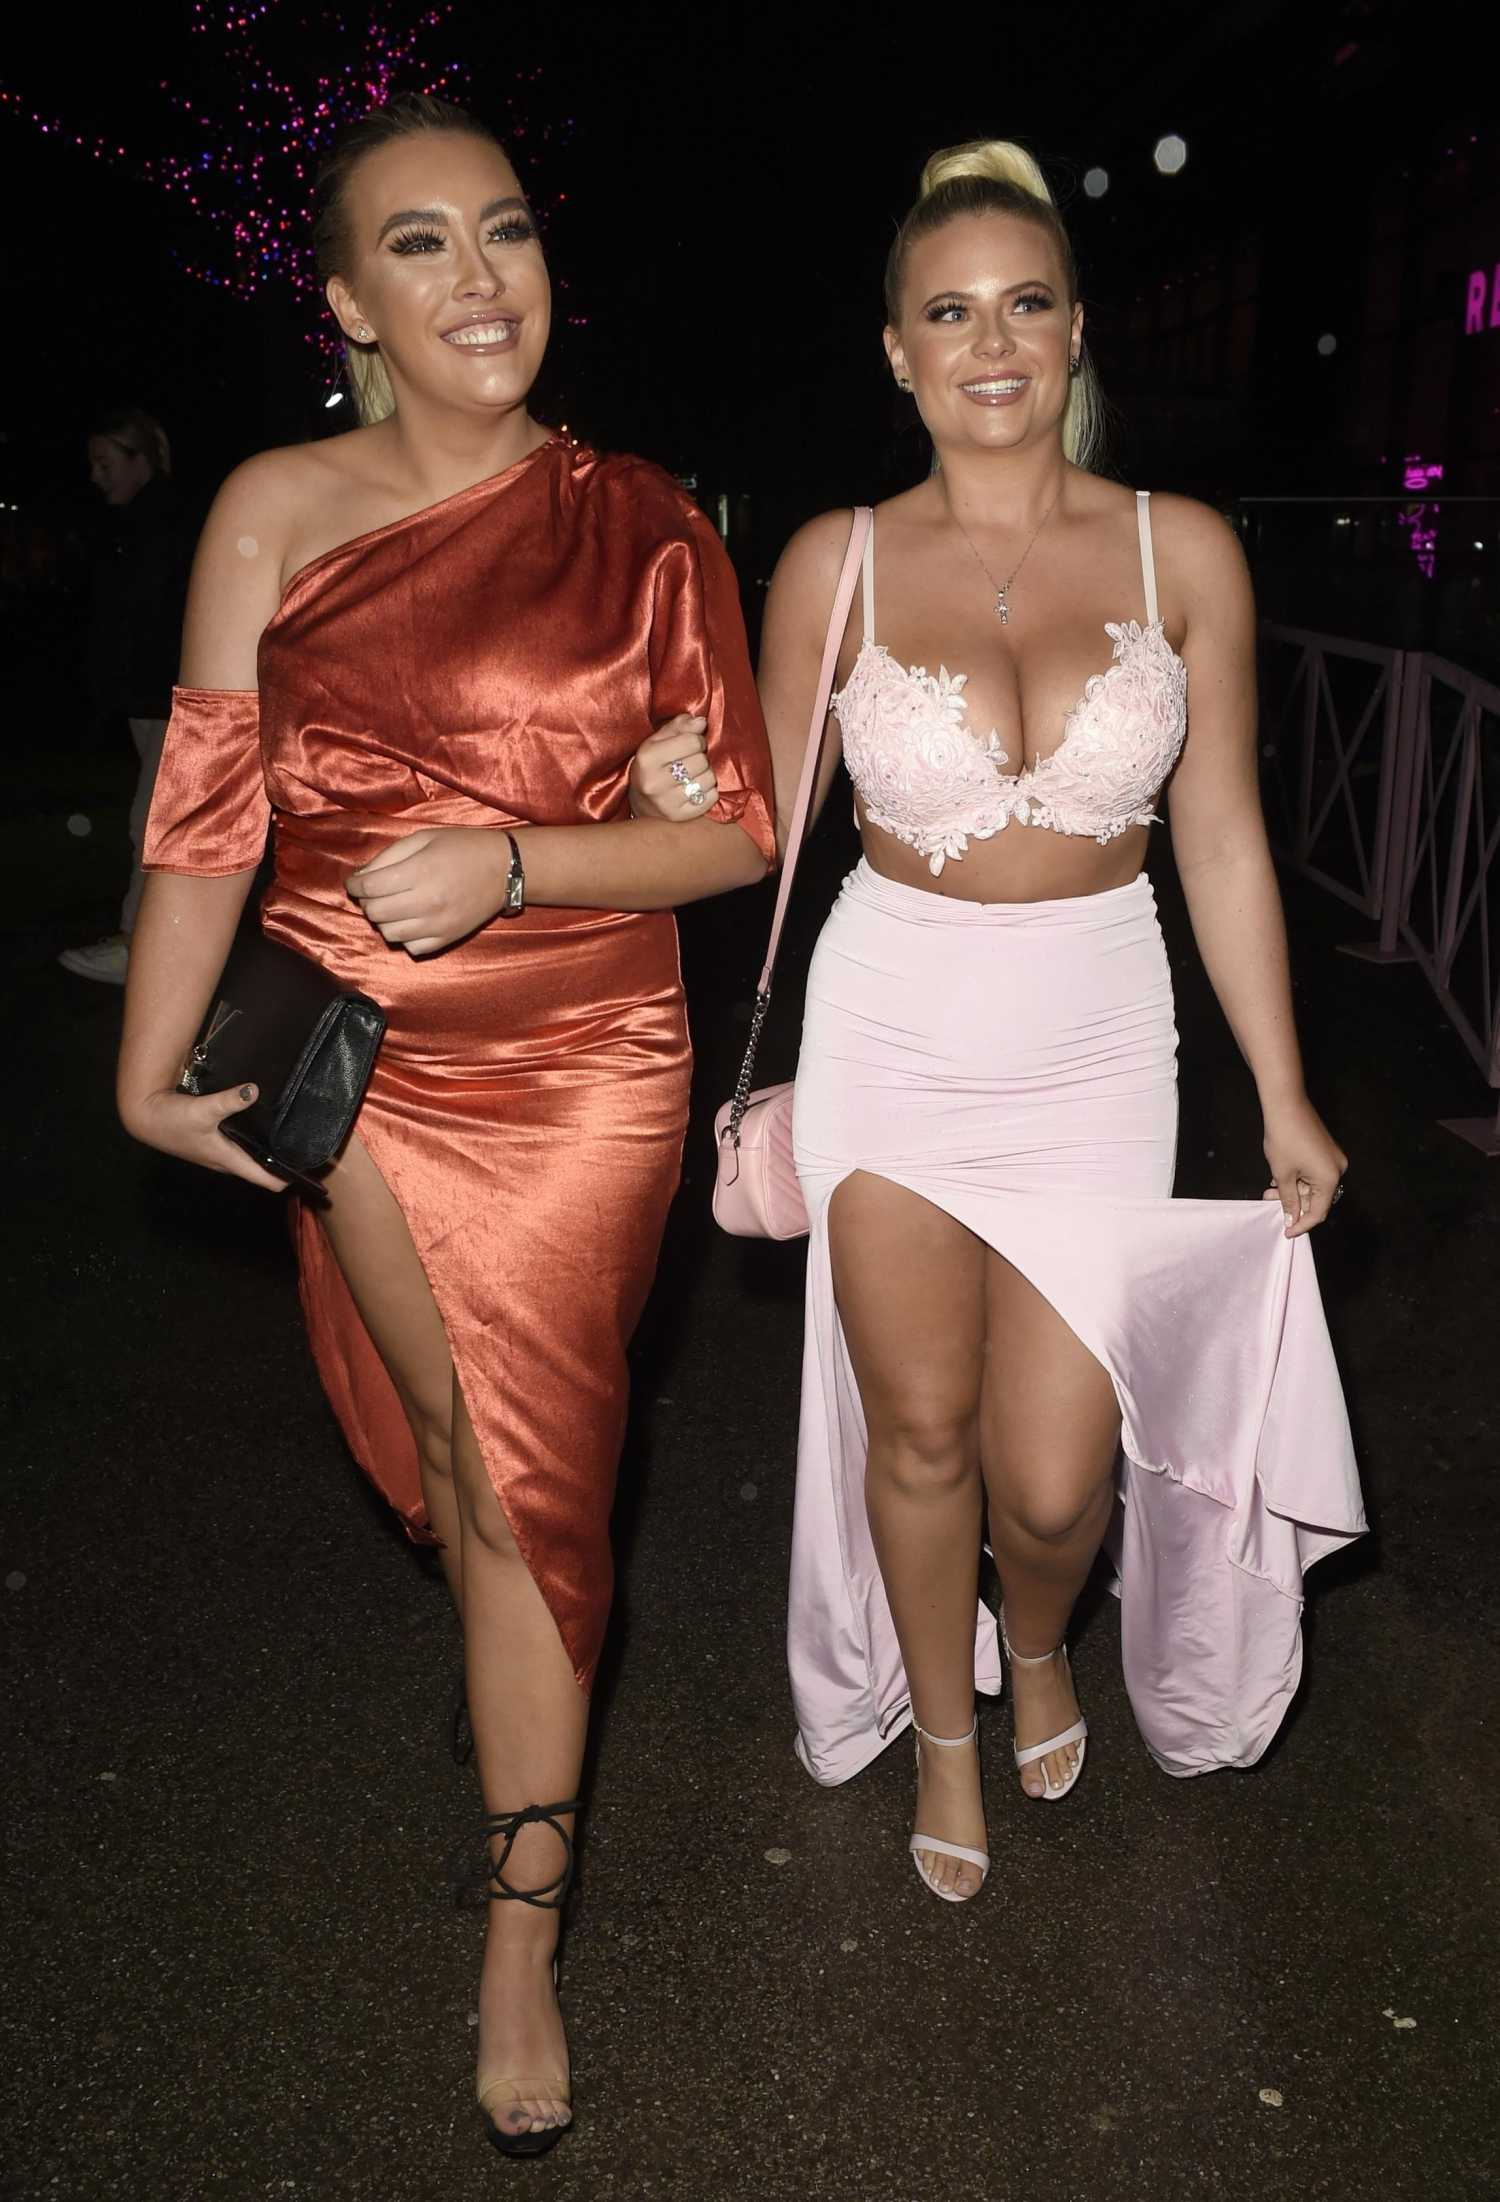 Apollonia Llewellyn in a Pink Outfit Arrives for the